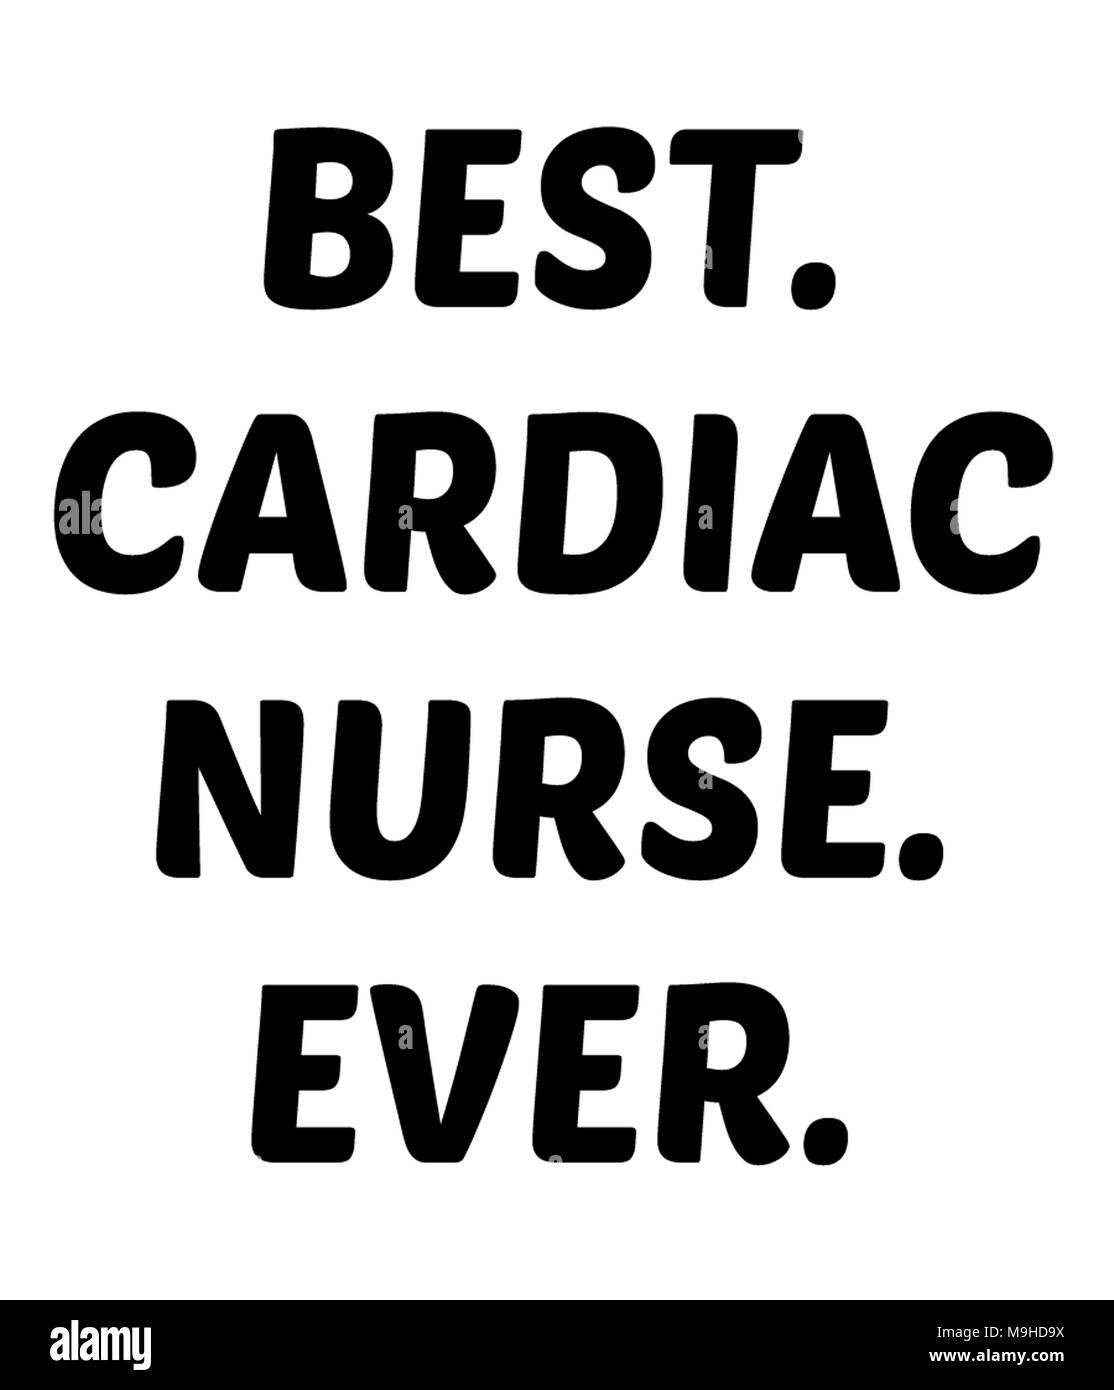 best cardiac nurse ever stock photo 178019238 alamy